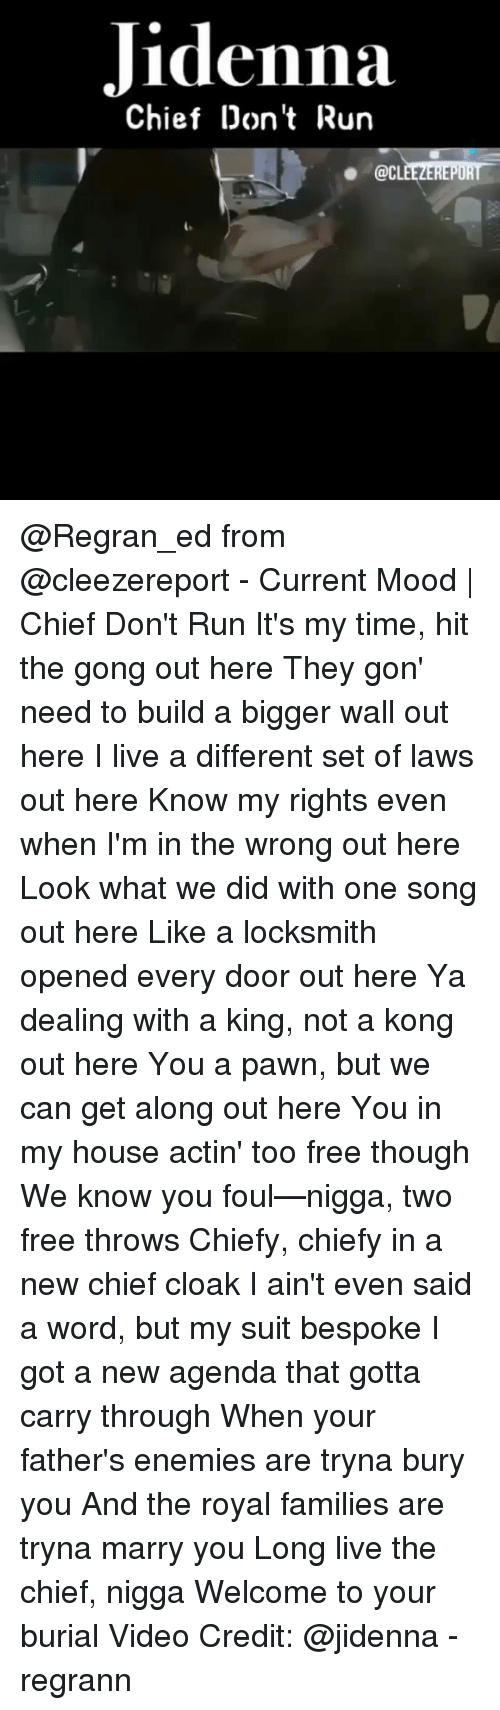 Jidenna, Memes, and Mood: Jidenna  Chief Don't Run  . @CLEEZEREPORT @Regran_ed from @cleezereport - Current Mood | Chief Don't Run It's my time, hit the gong out here They gon' need to build a bigger wall out here I live a different set of laws out here Know my rights even when I'm in the wrong out here Look what we did with one song out here Like a locksmith opened every door out here Ya dealing with a king, not a kong out here You a pawn, but we can get along out here You in my house actin' too free though We know you foul—nigga, two free throws Chiefy, chiefy in a new chief cloak I ain't even said a word, but my suit bespoke I got a new agenda that gotta carry through When your father's enemies are tryna bury you And the royal families are tryna marry you Long live the chief, nigga Welcome to your burial Video Credit: @jidenna - regrann